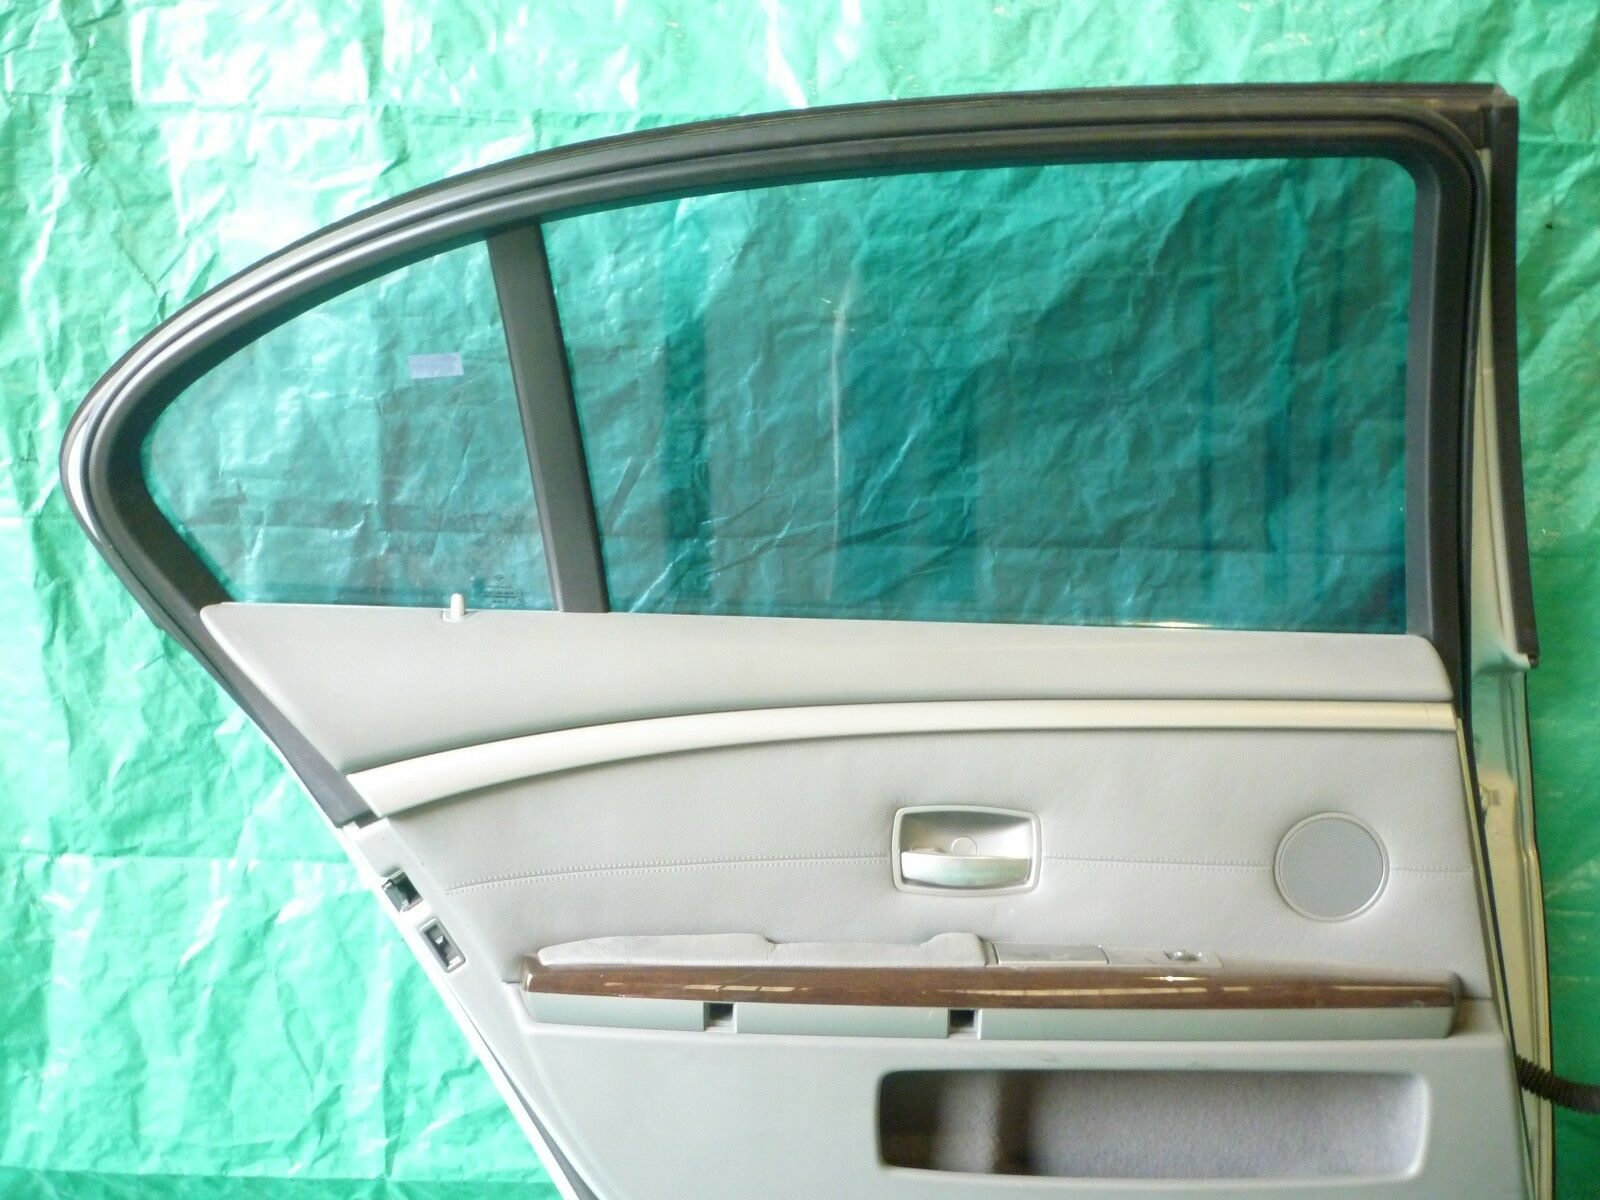 Used BMW Exterior Door Panels & Frames for Sale - Page 15